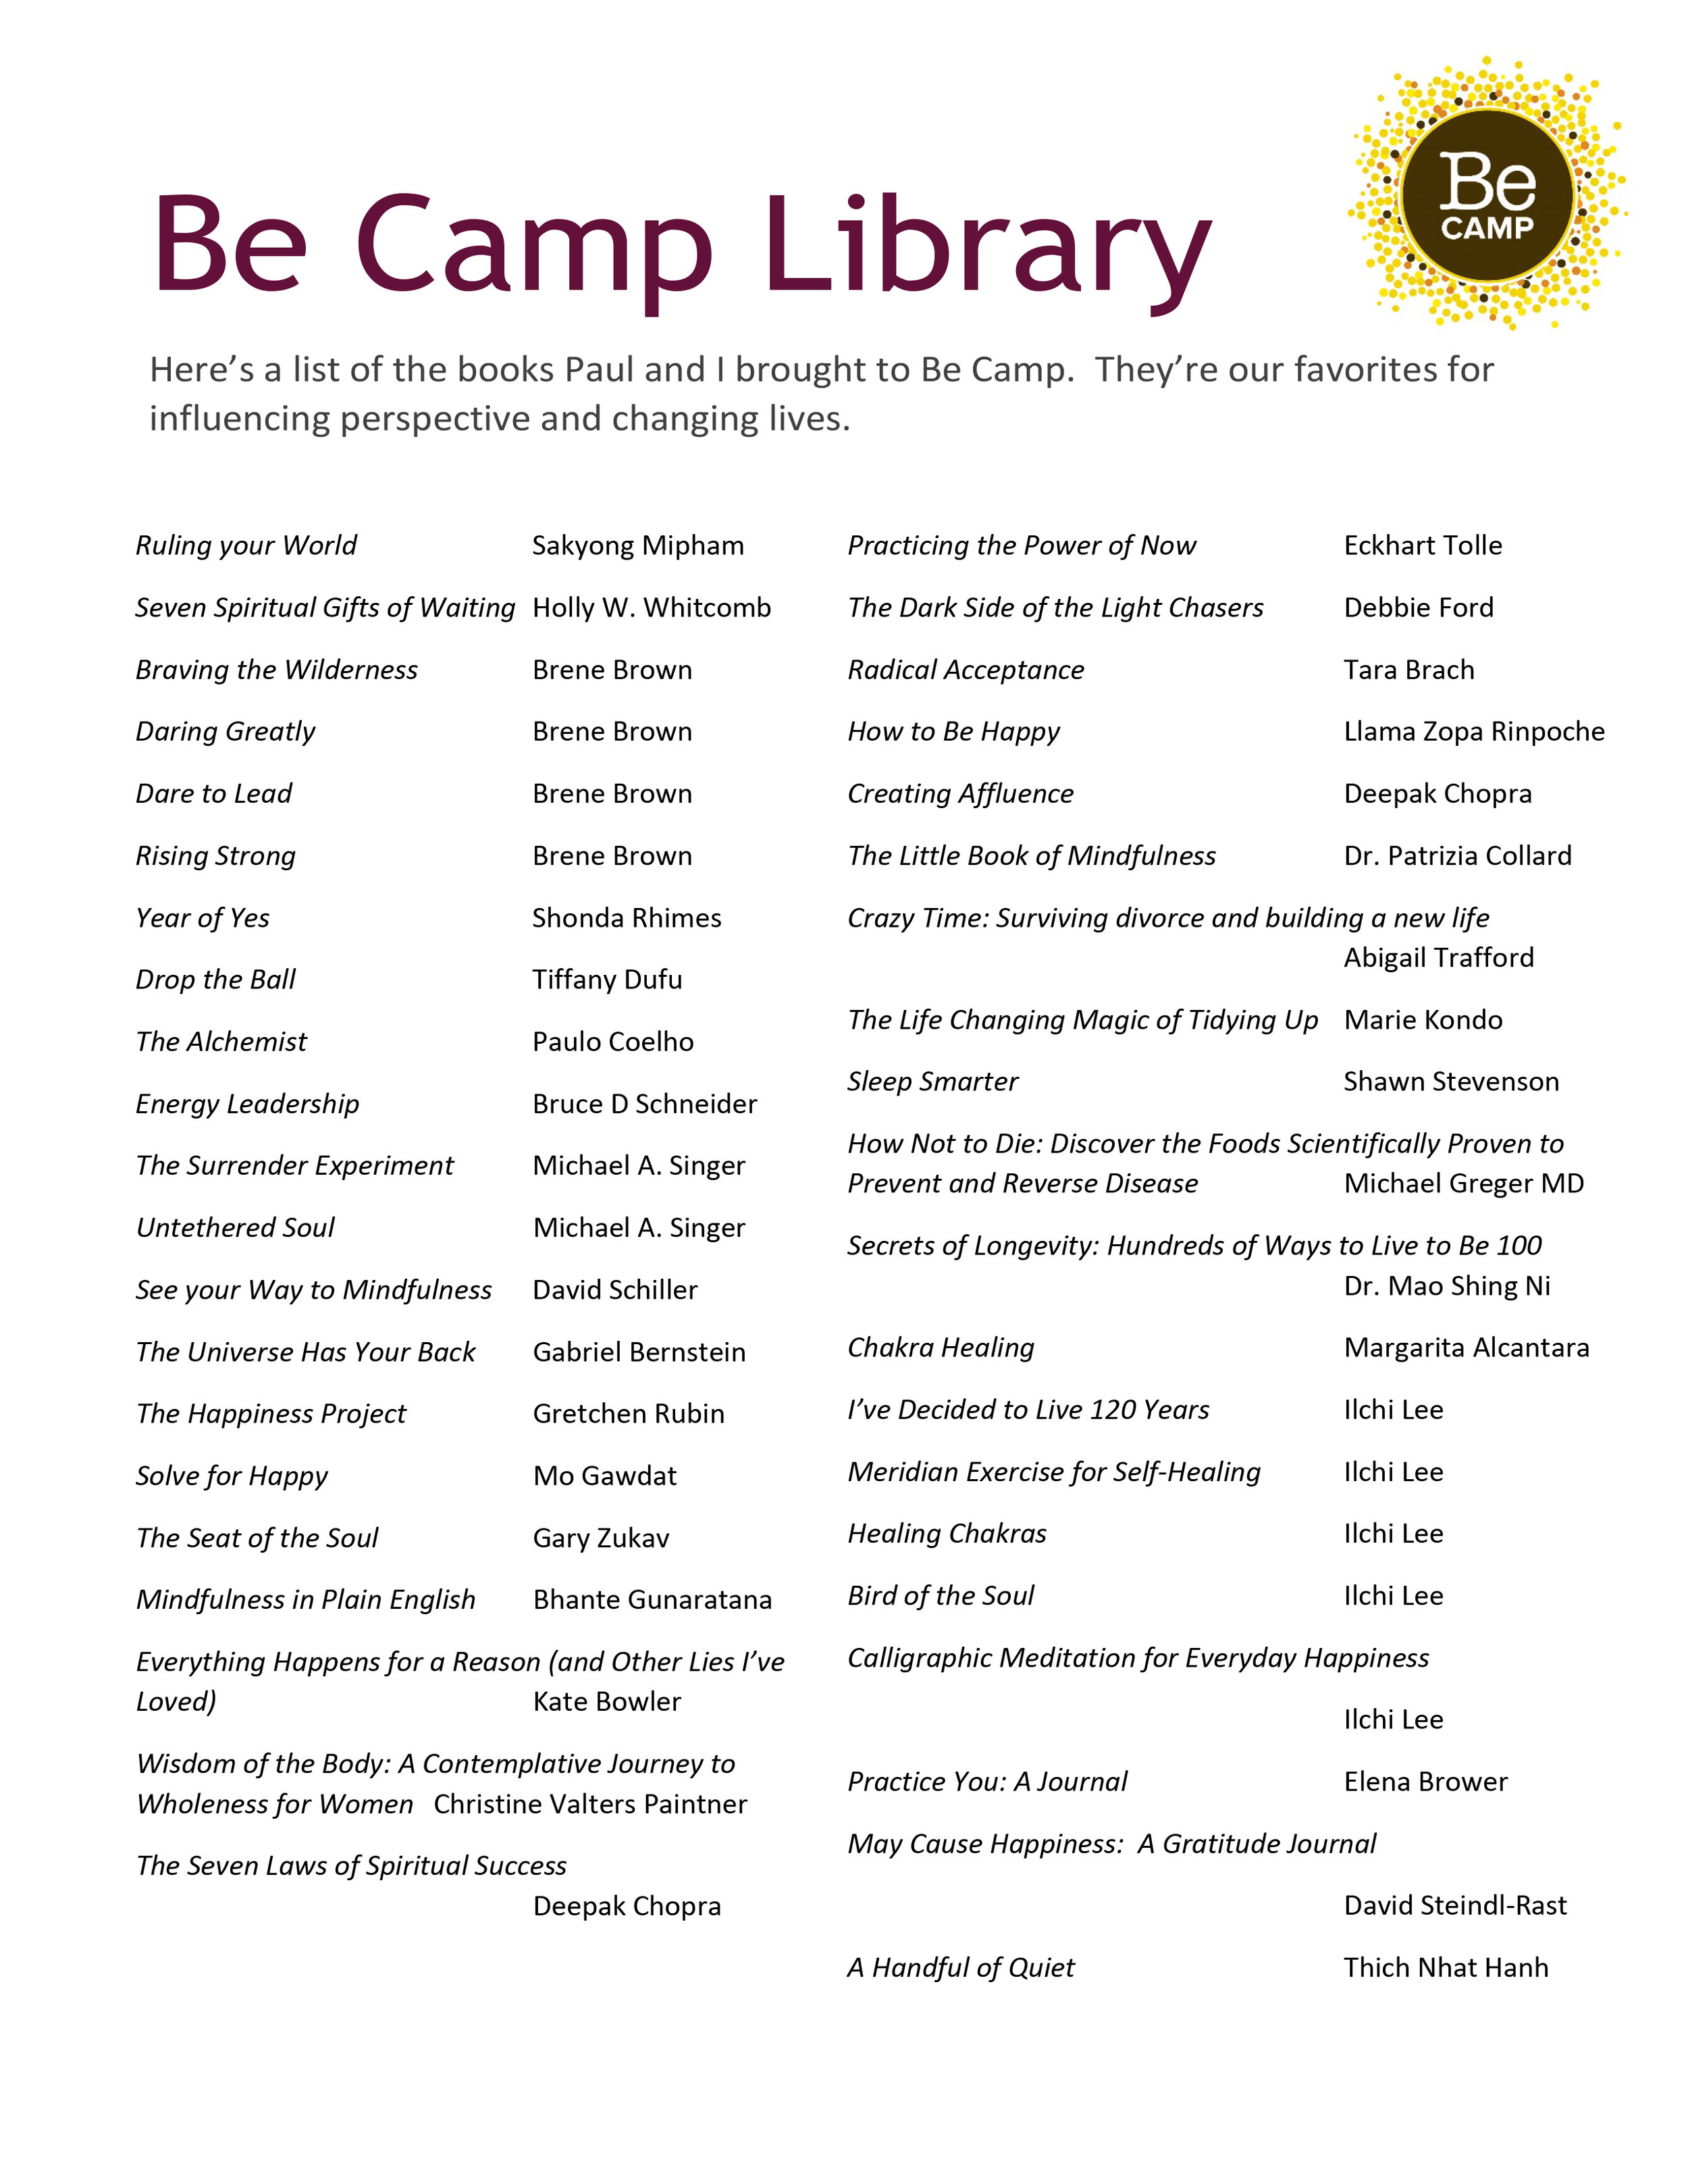 Be-Camp-Library-Book-List-2019.jpg